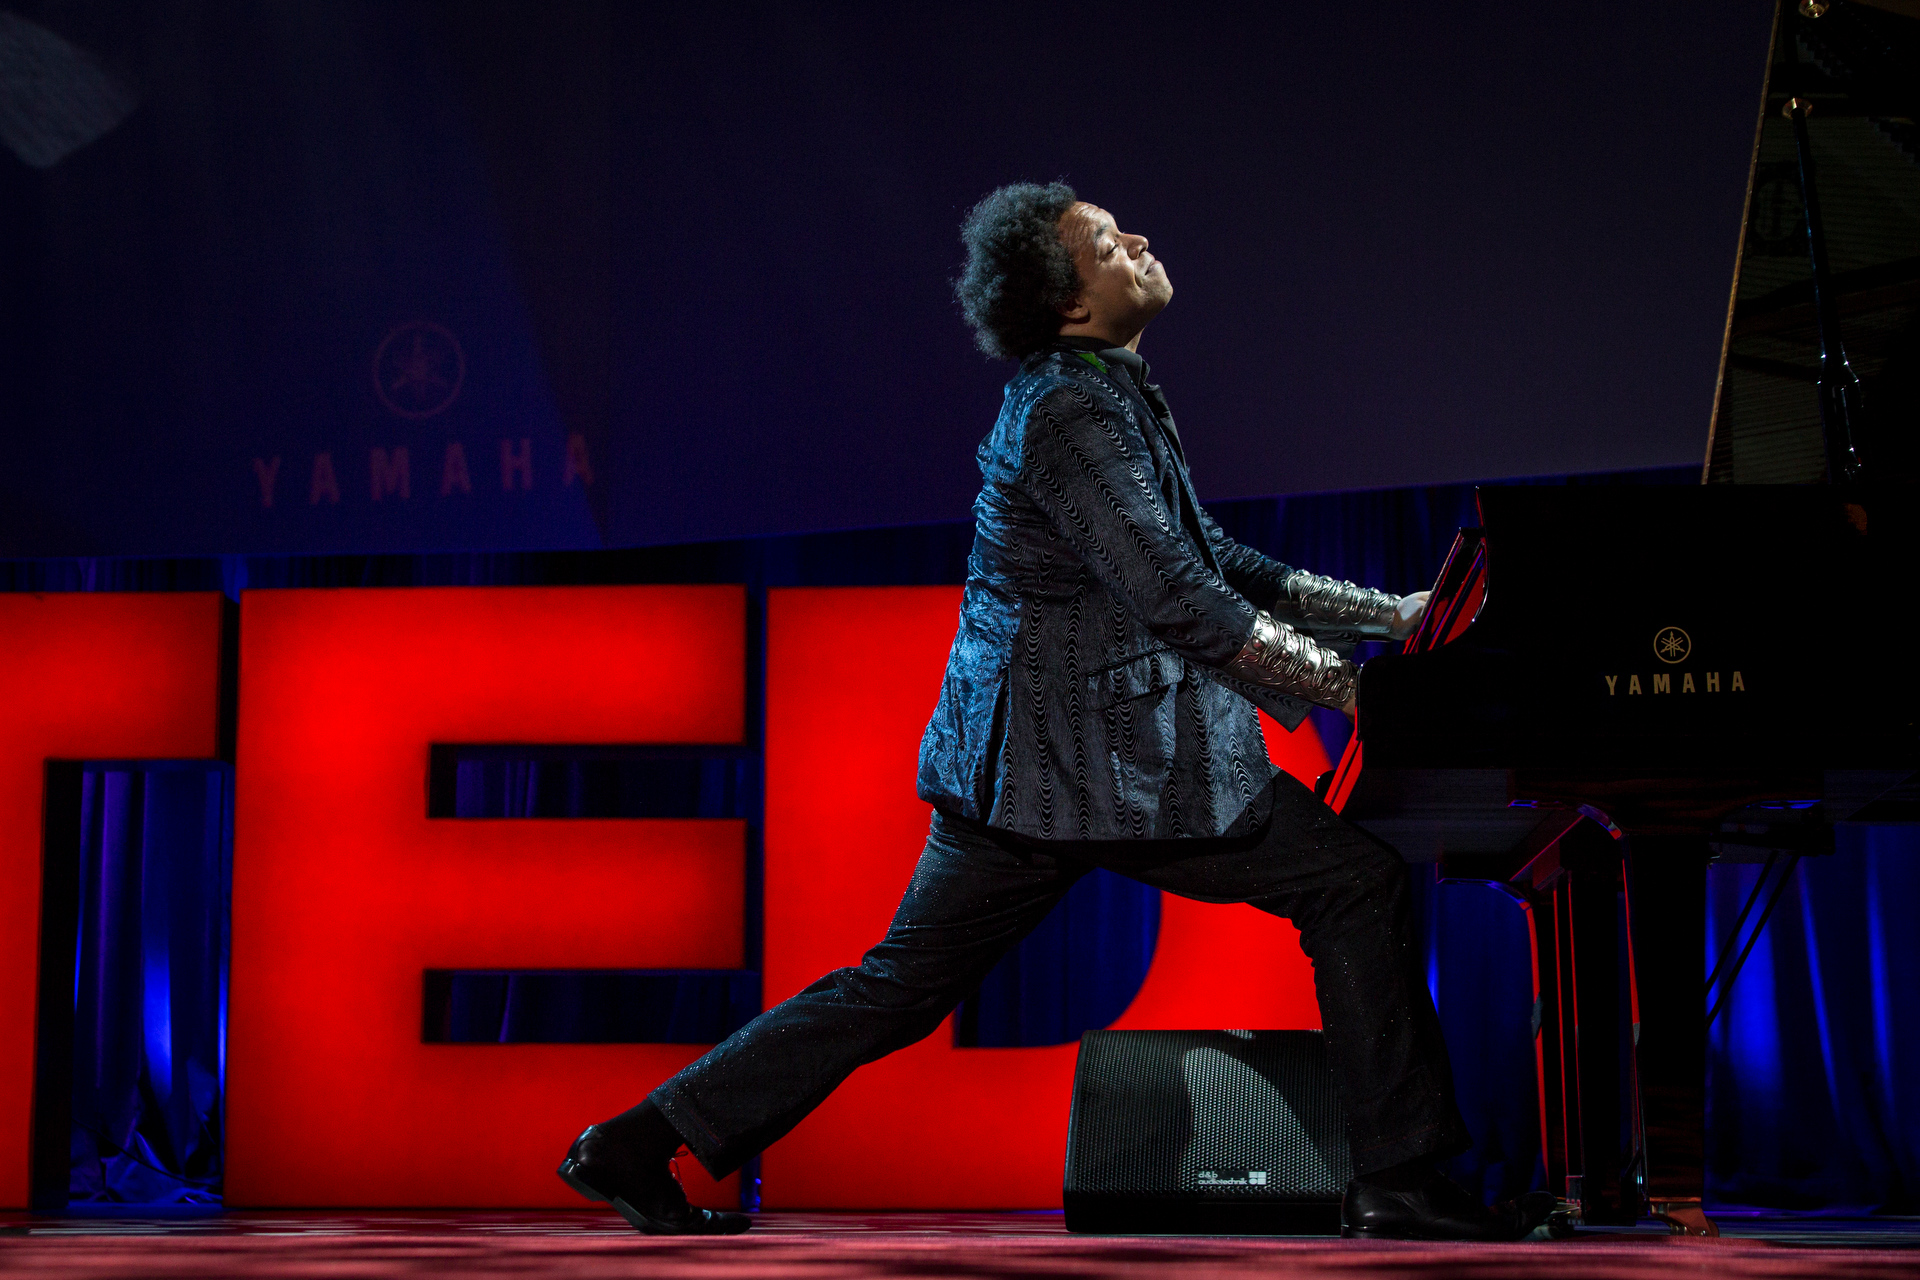 Eric Lewis (Elew) performs at TED2015 - Truth and Dare, TED University. Photo: Bret Hartman/TED